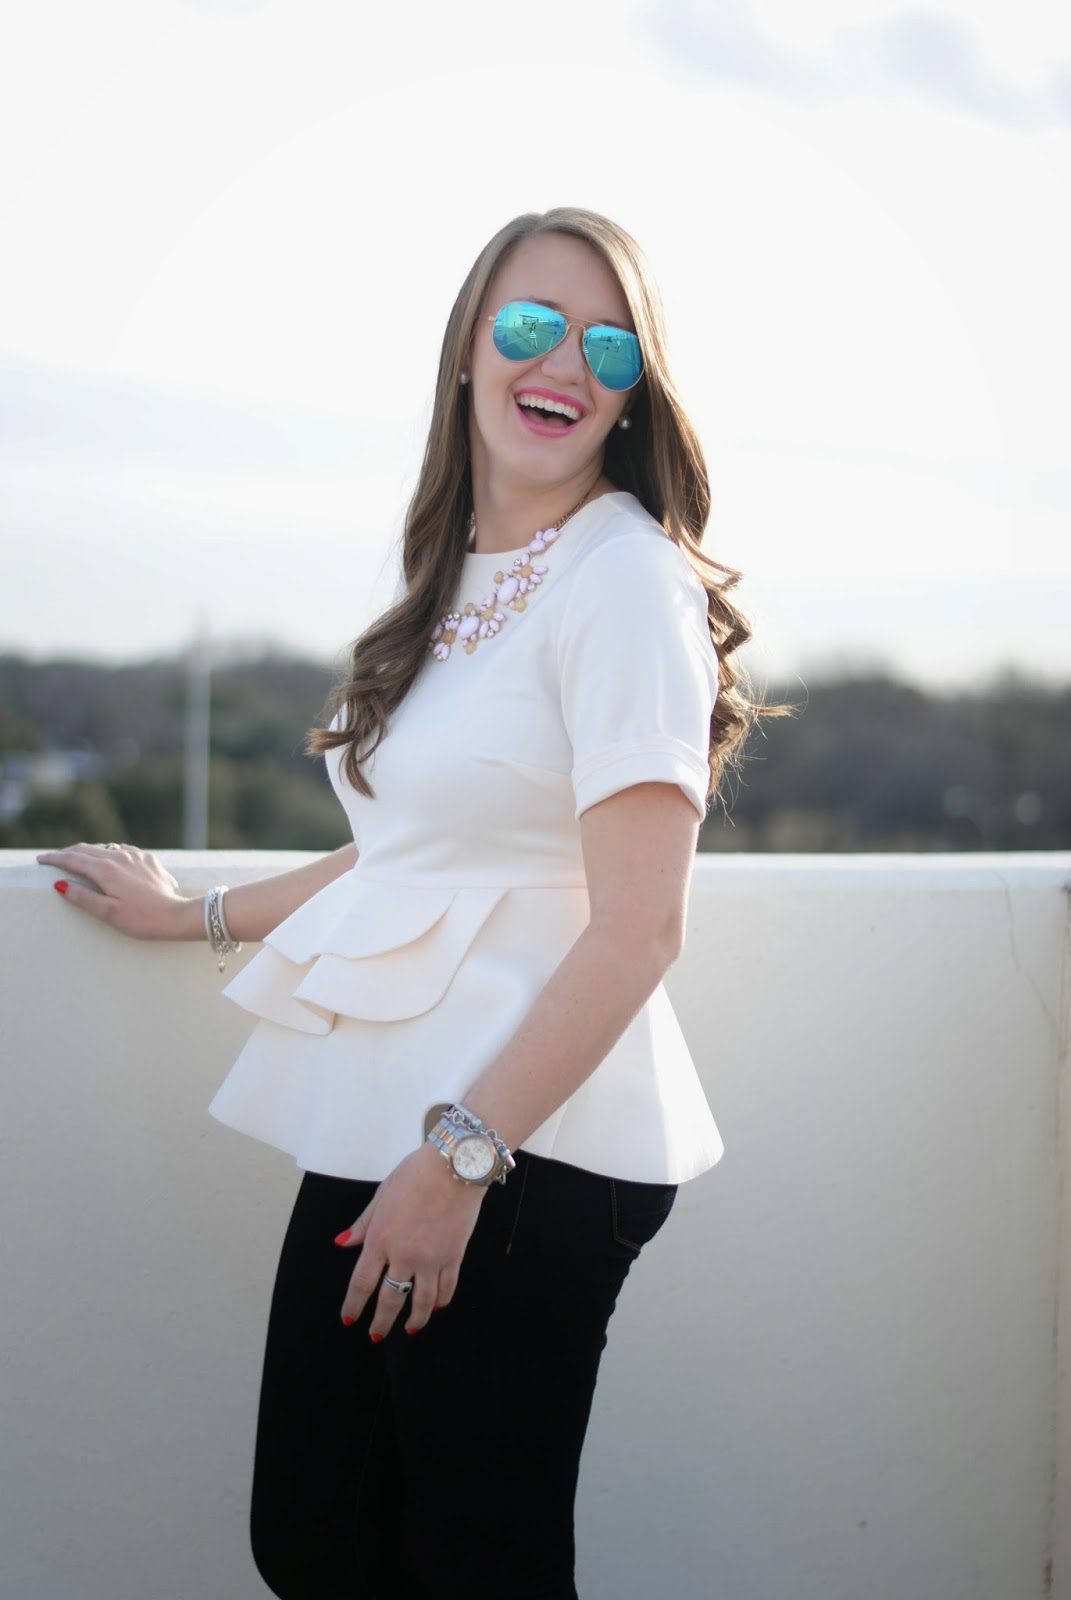 krista robertson, southern shopaholic, fashion blogger, preppy fashion blogger, new york city fashion blogger